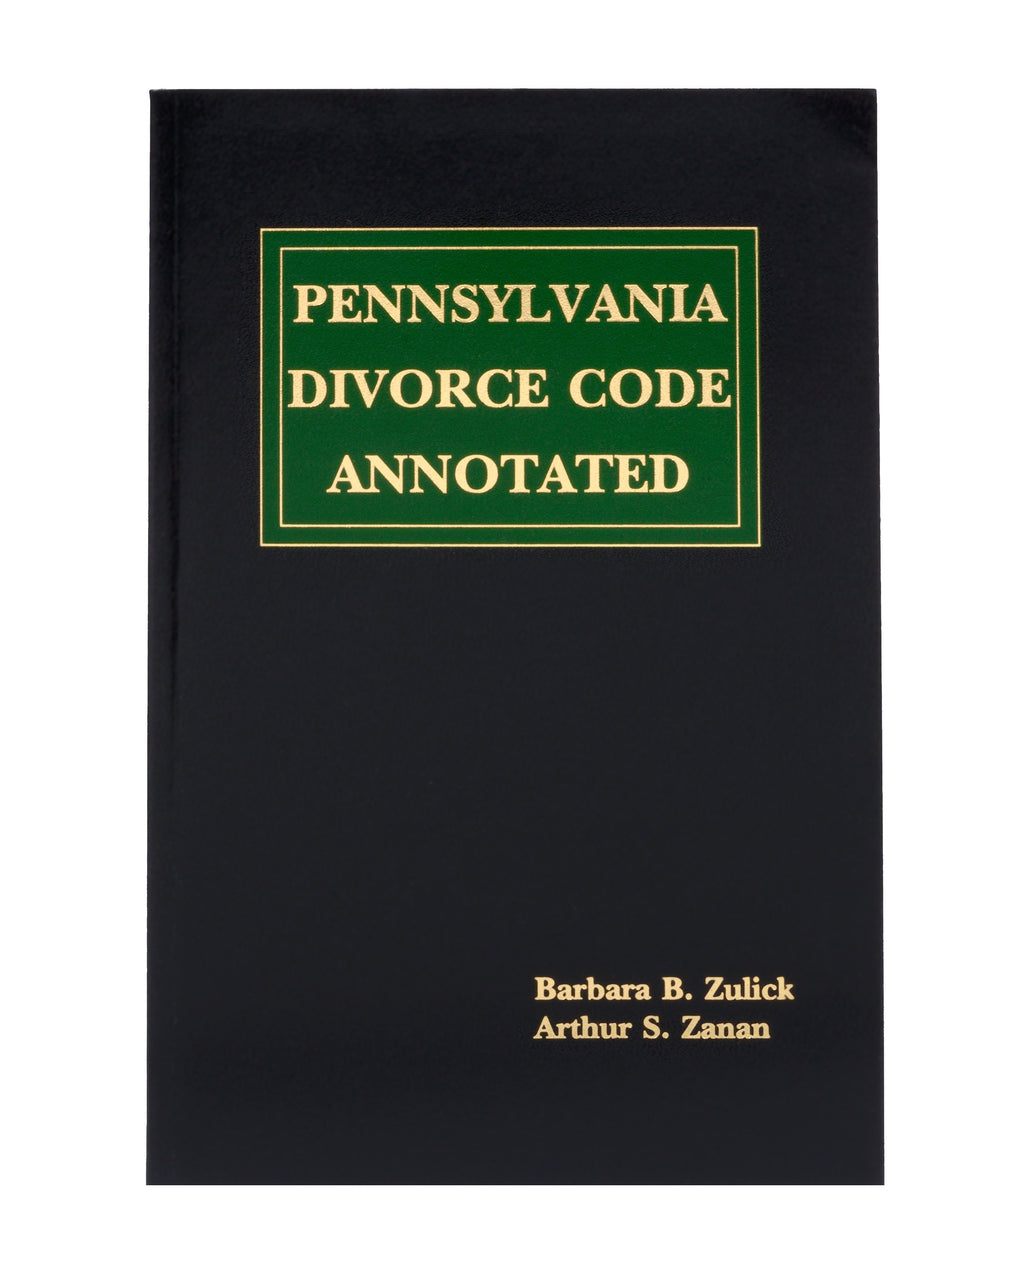 Pennsylvania Divorce Code Annotated